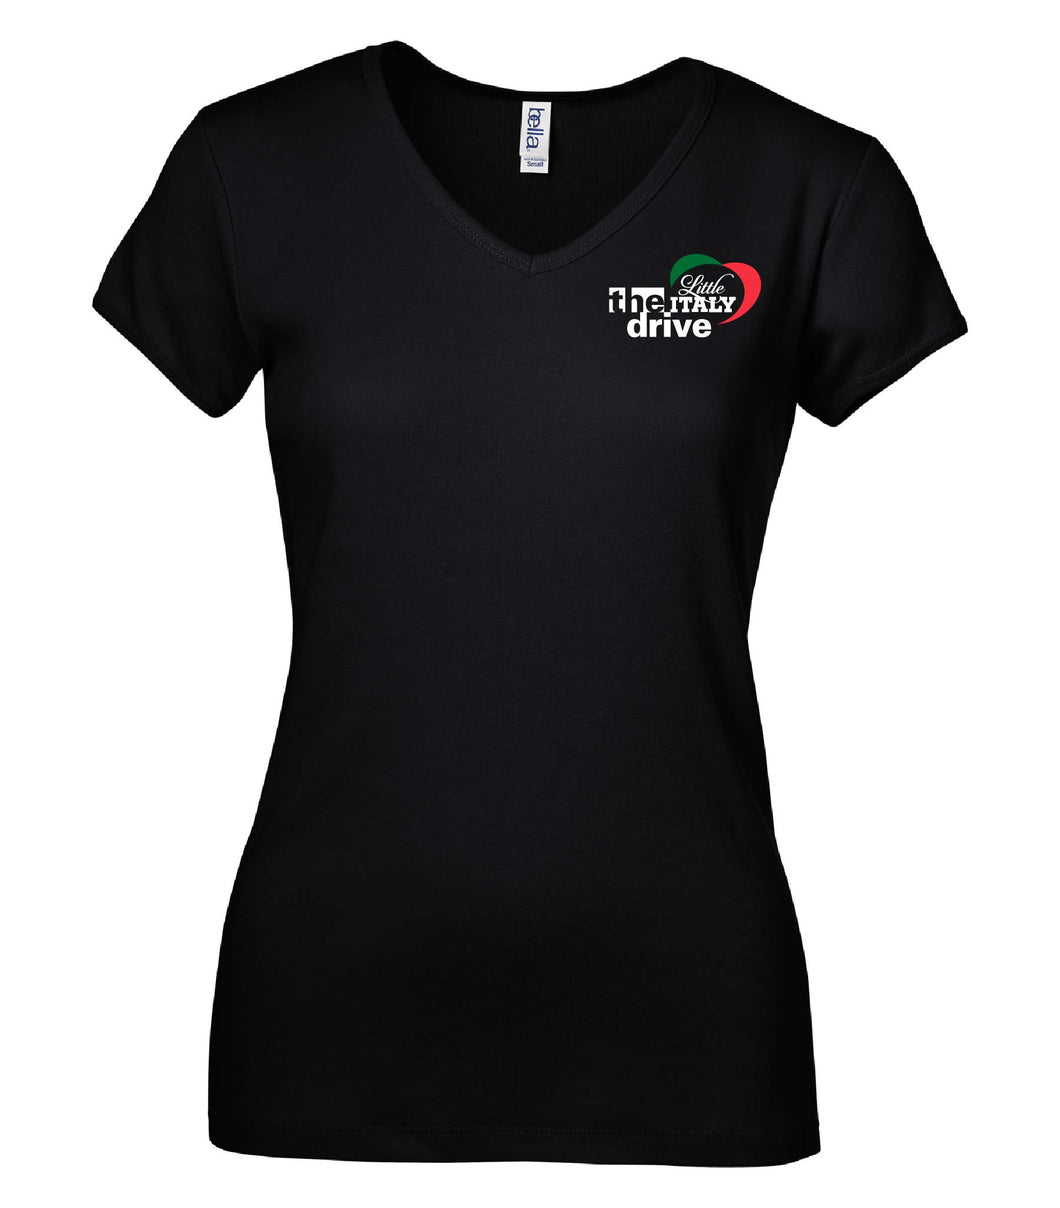 Ladies Vee Neck Tee - The Drive